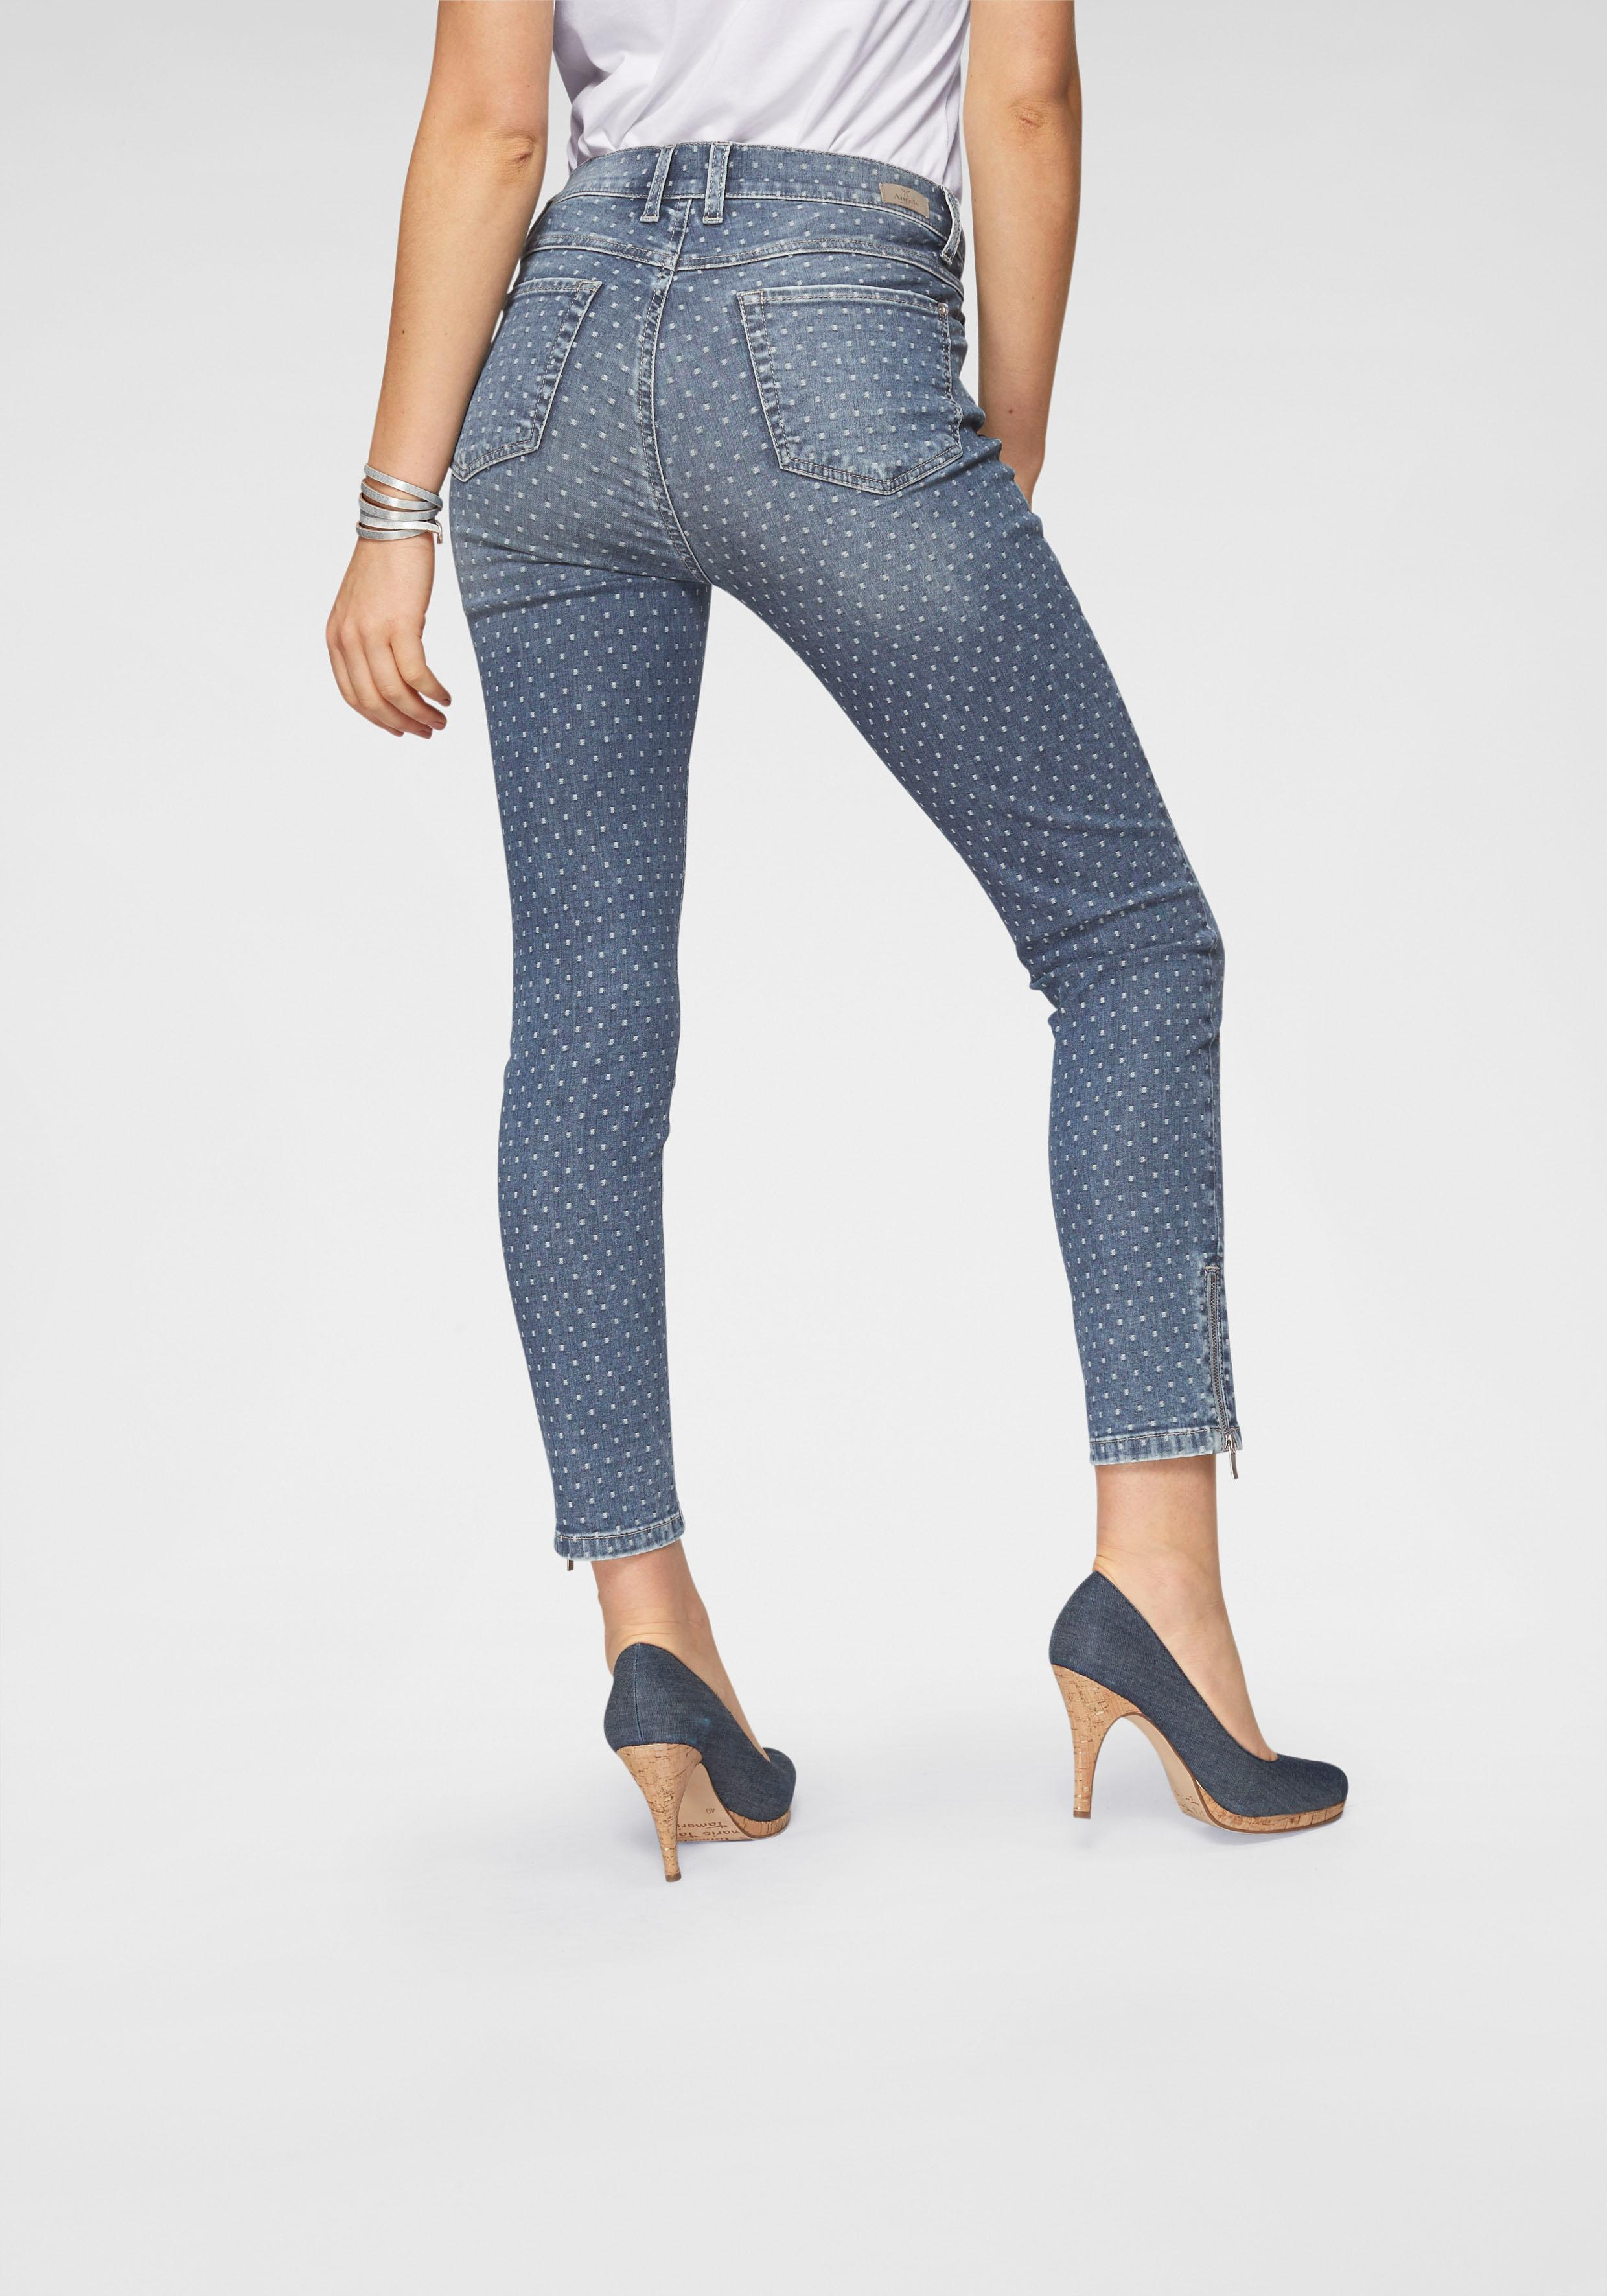 Image of ANGELS Ankle-Jeans »Ankle Skinny Zip«